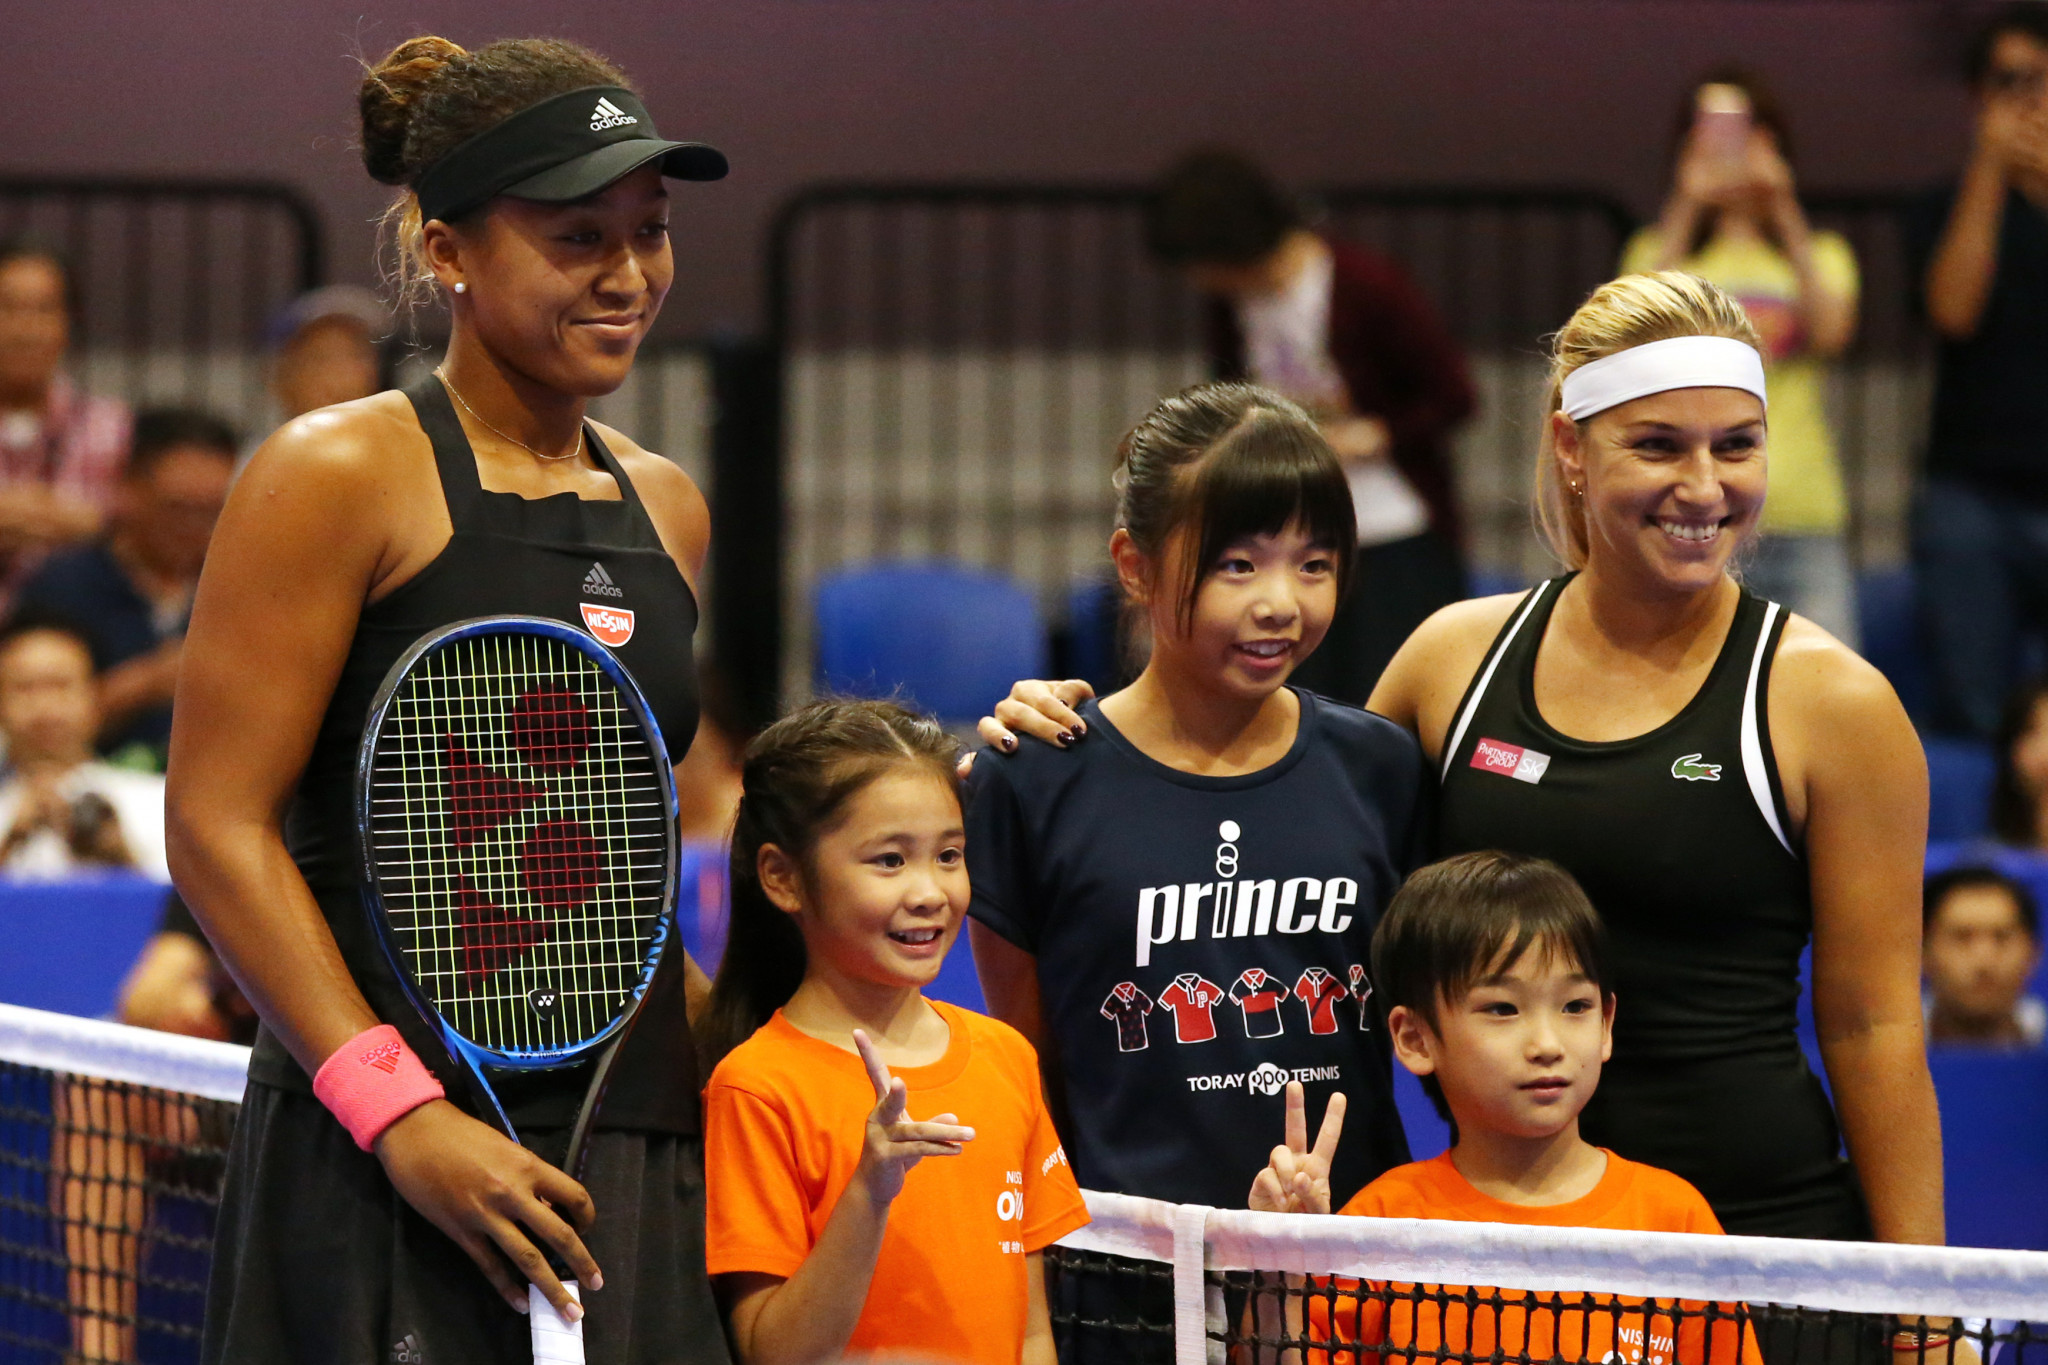 Japan's newly-crowned US Open champion Naomi Osaka and the Czech Republic's Dominika Cibulková before the Pan Pacific Open second round match in Tokyo which the home player went on to win ©Getty Images